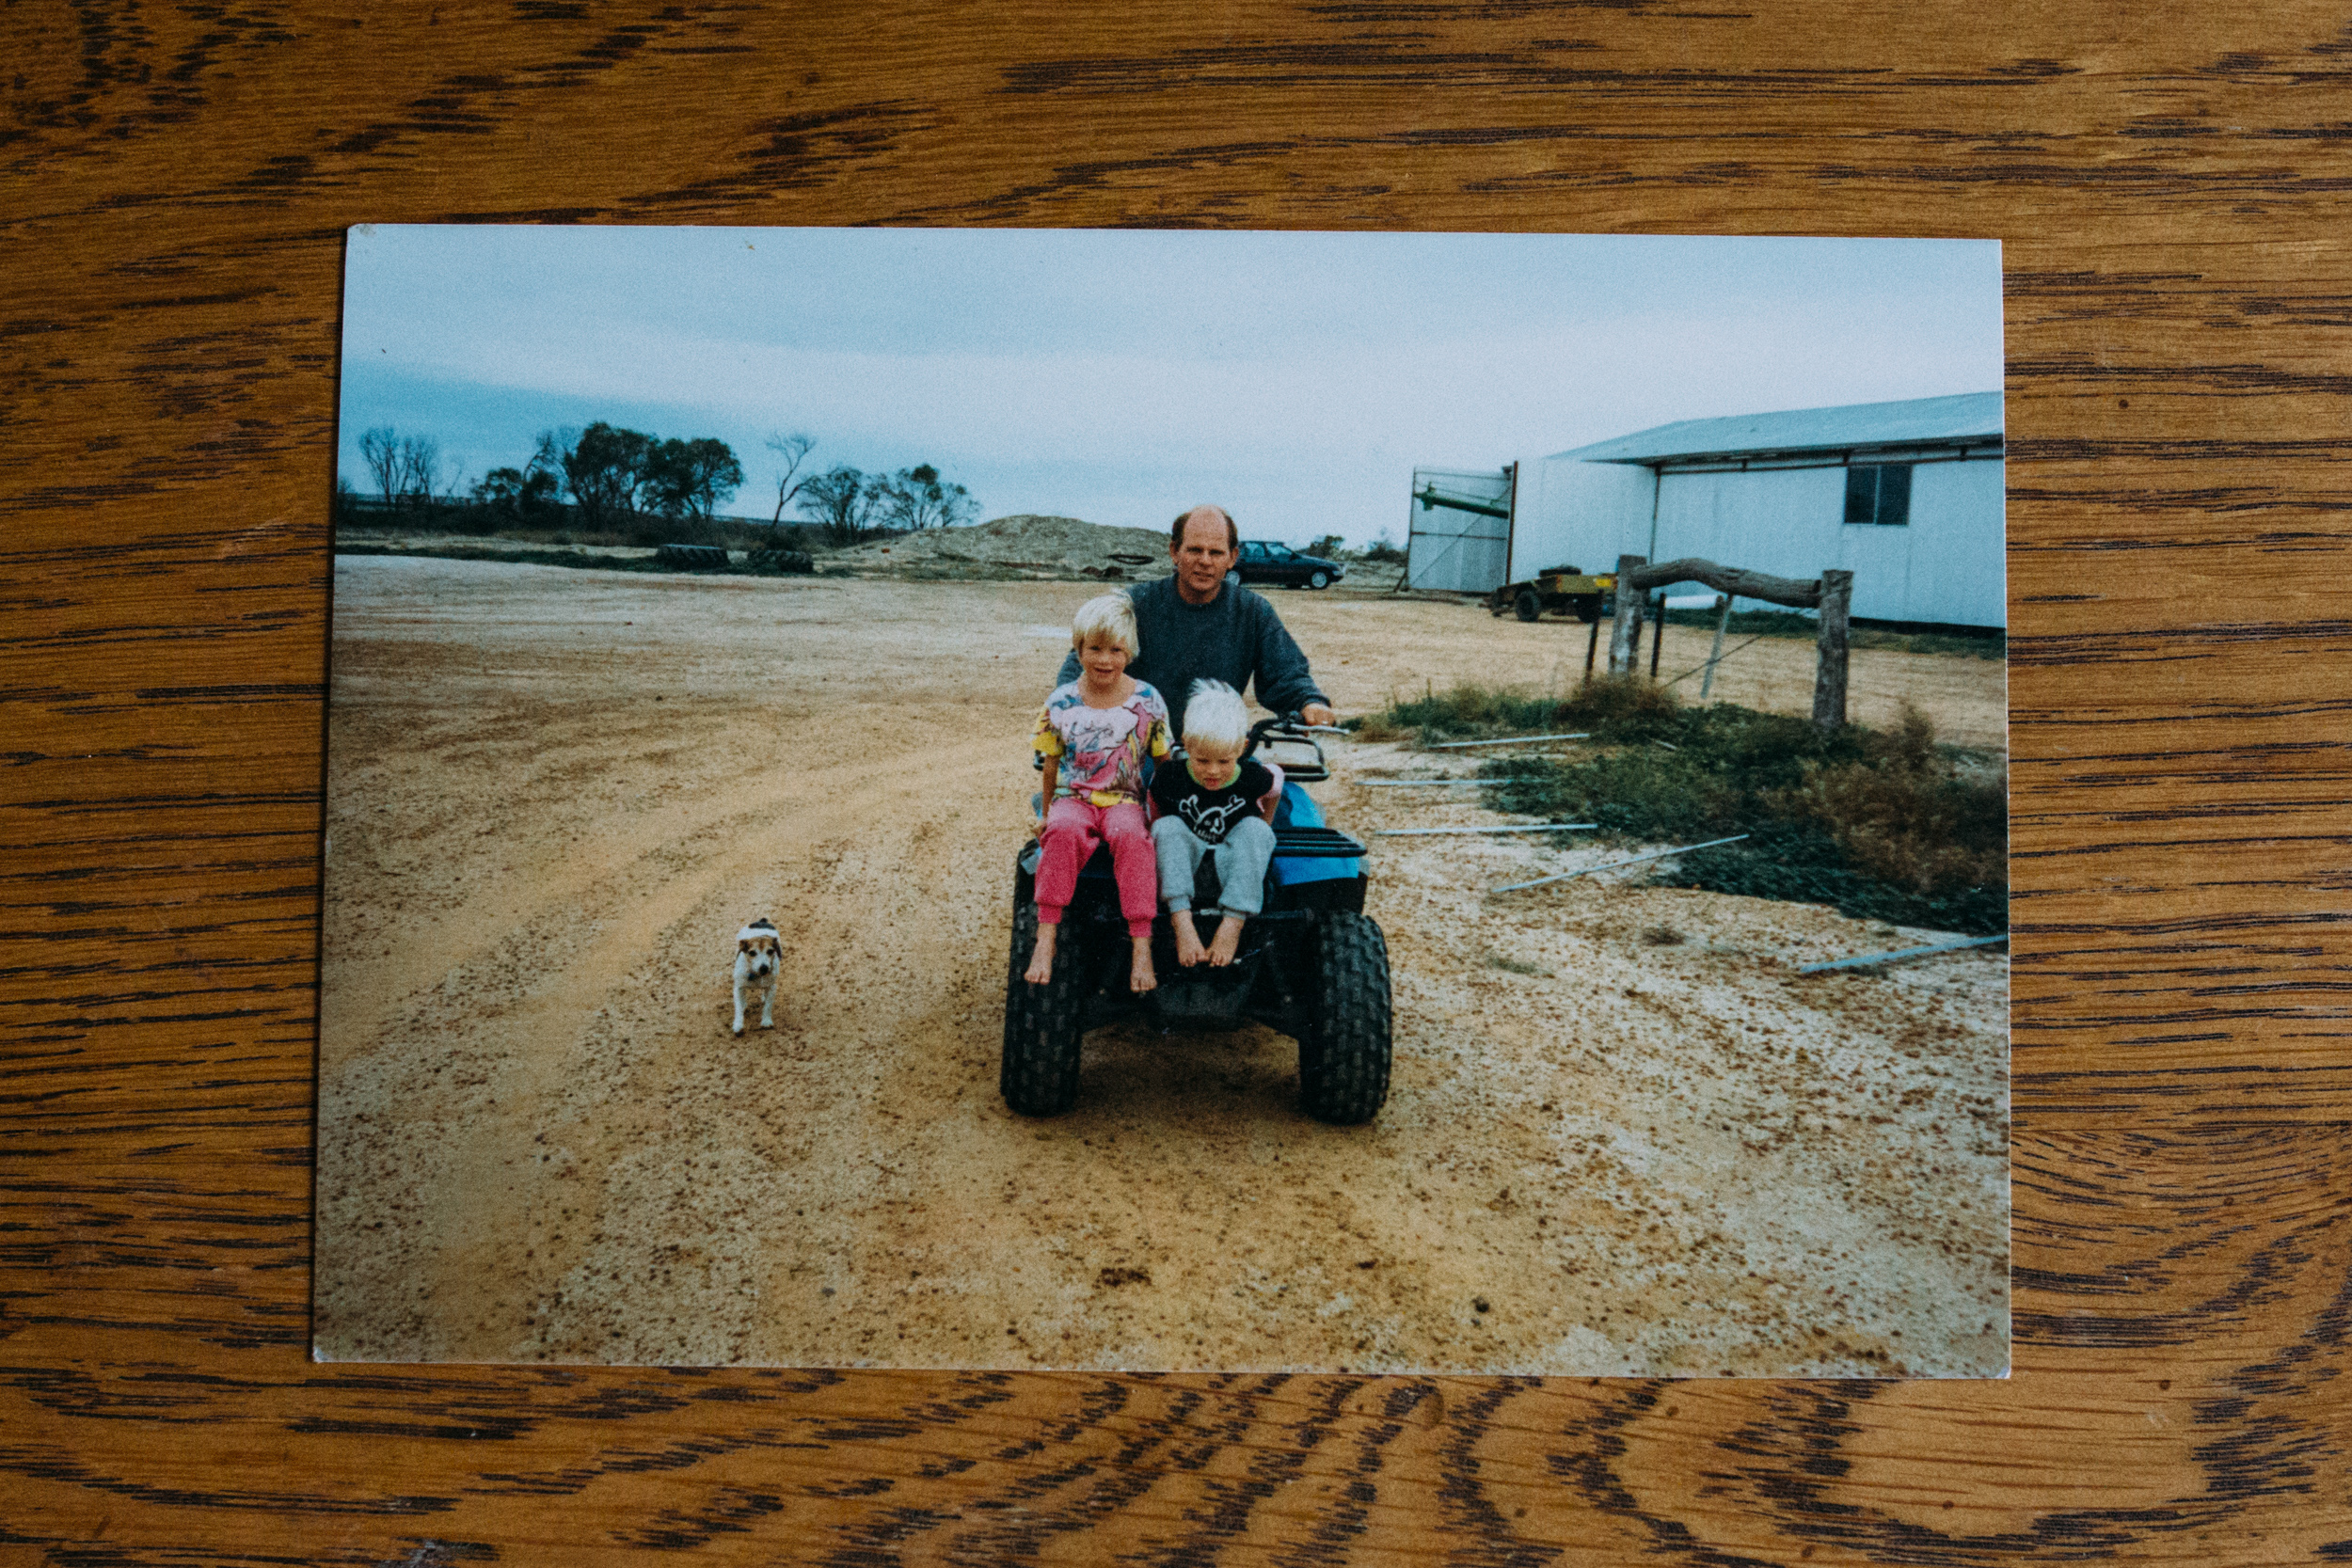 Sally's husband Peter, daughter Kathy and son David on their farm in Wialki (Western Australia) in 1987. I had asked Sally for some photos of herself during these years, but she wrote on the back of the photo: 'no photos of me as I was always the camera man.' Image: supplied by Sally Hall.